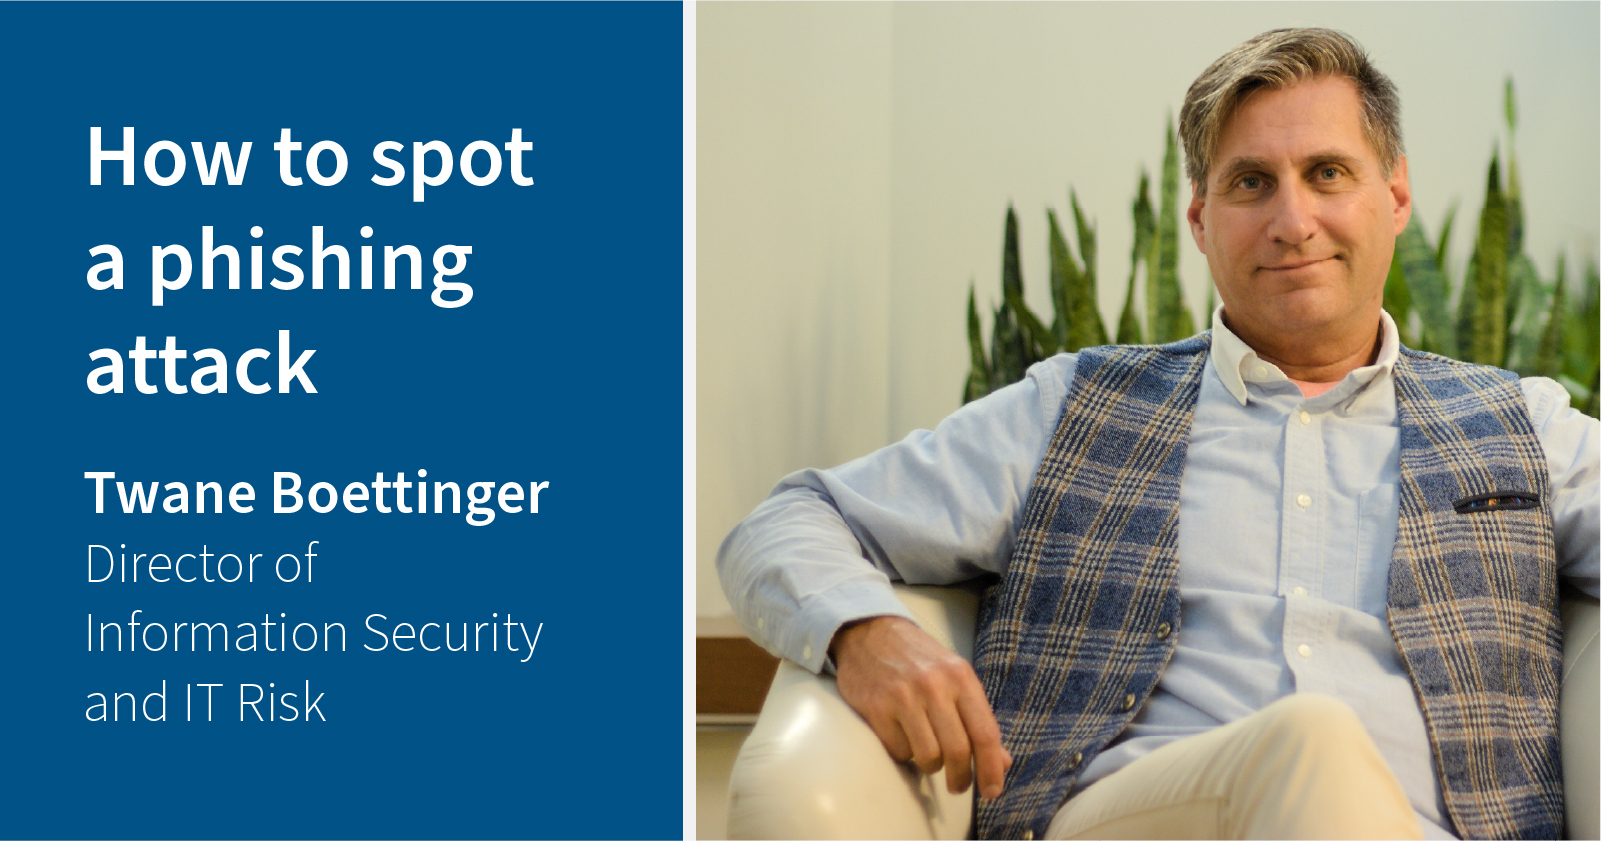 photo of Twane Boettinger sitting in a chair. Caption: How to spot a phishing attack, Twane Boettinger, Director of information security and IT risk